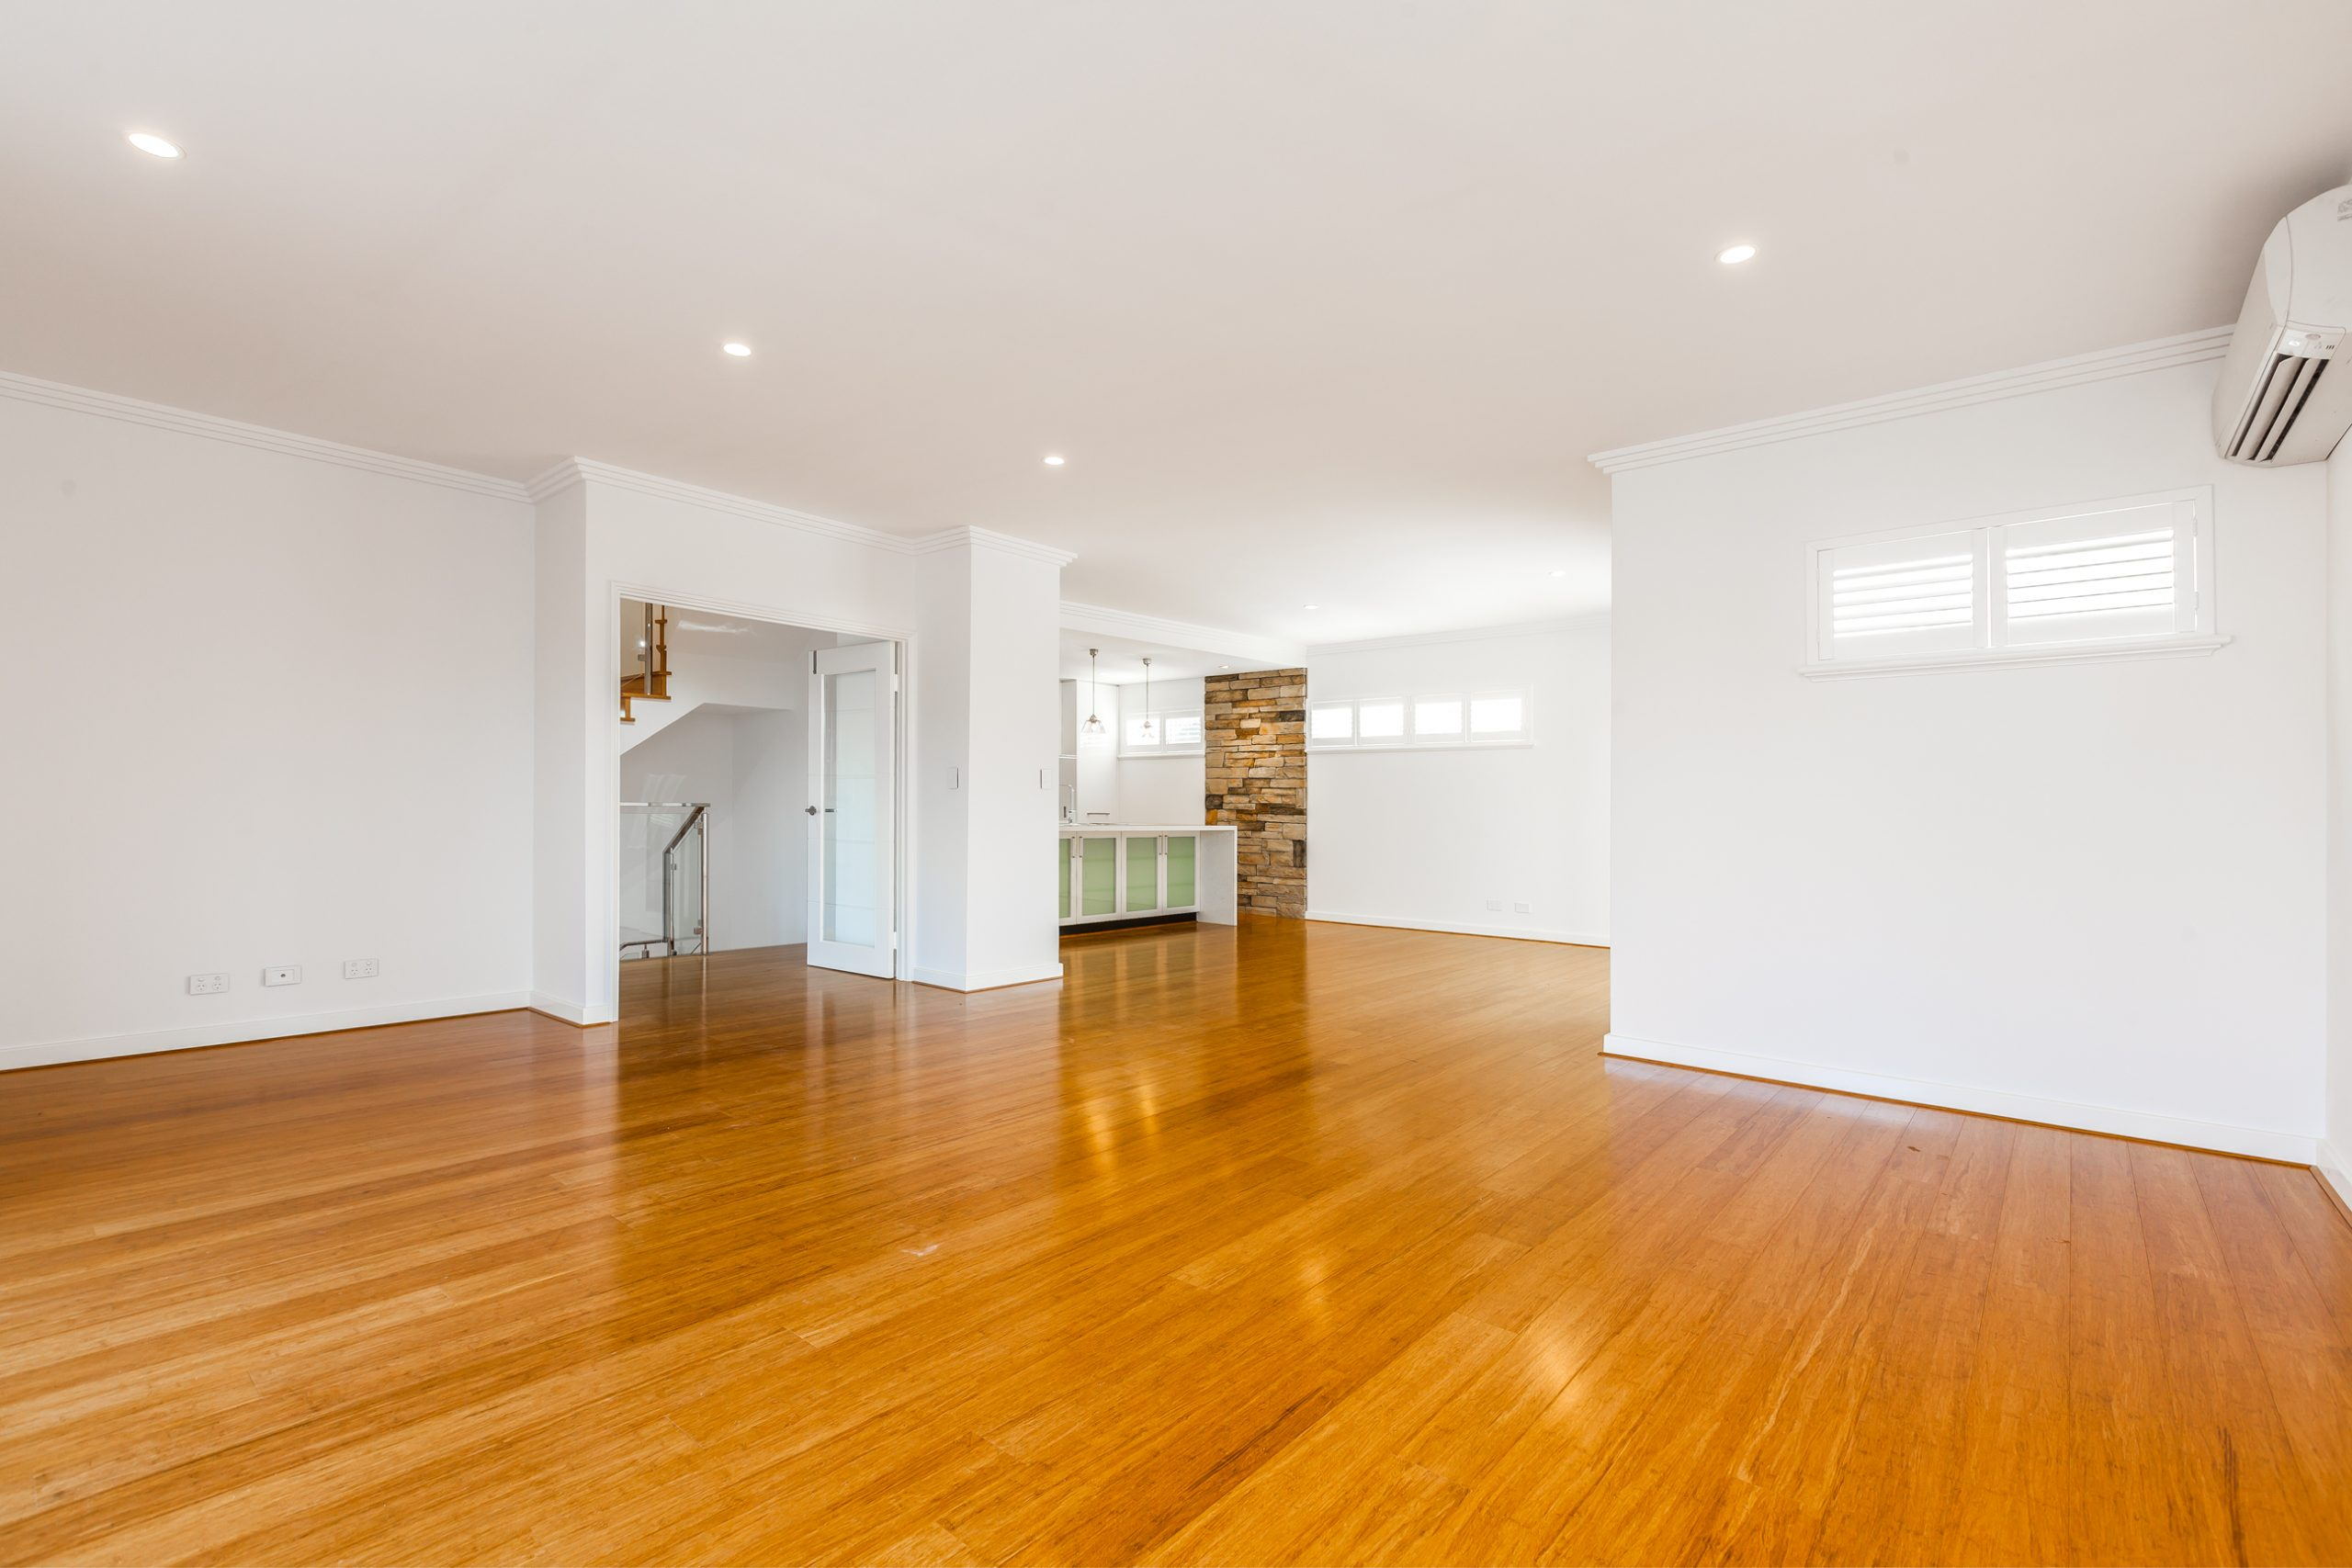 Empty living room with a varnished timber flooring and white walls